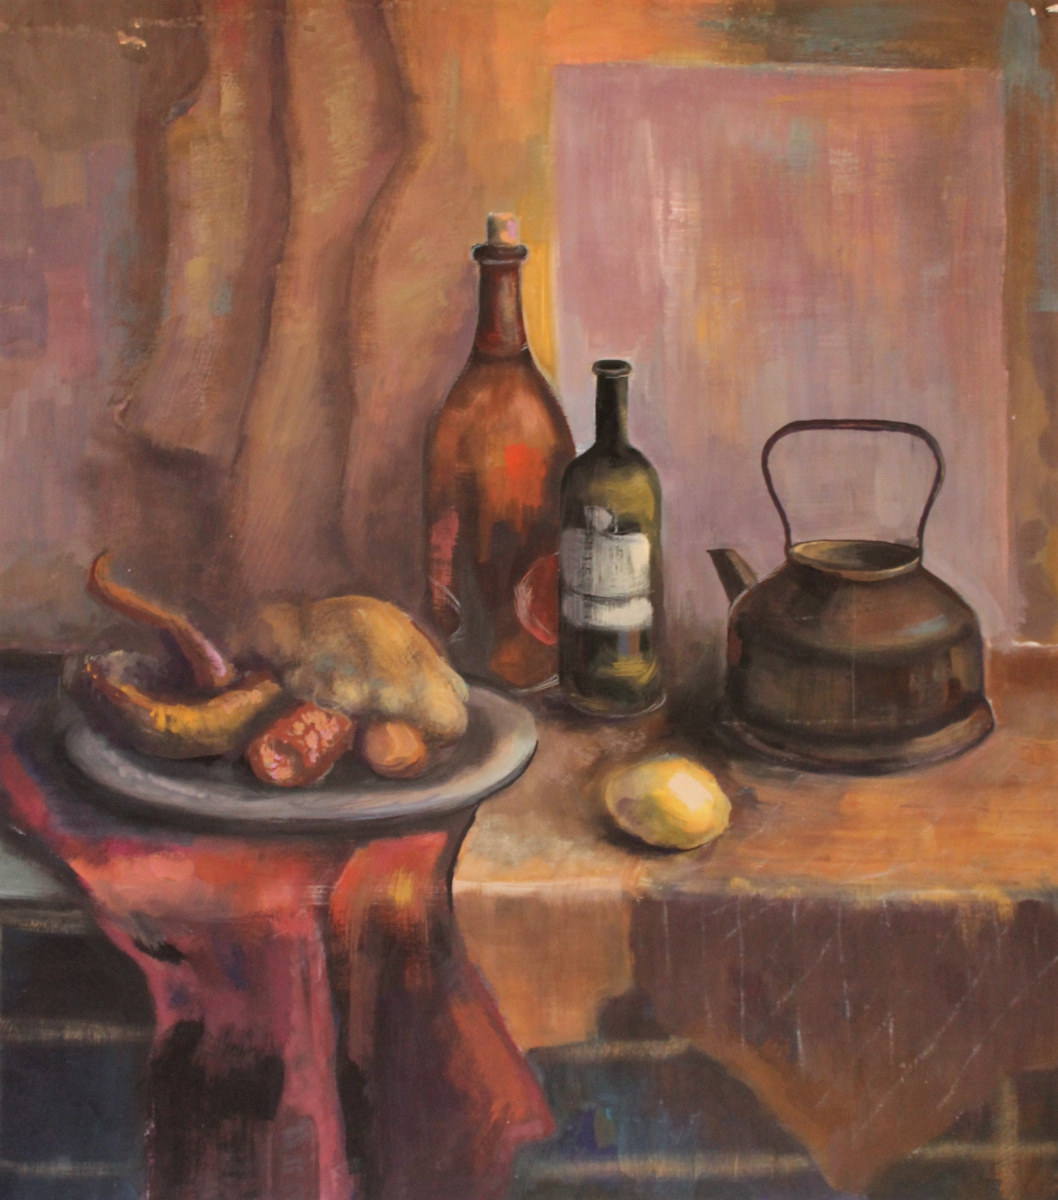 (no name). Still life in warm colors